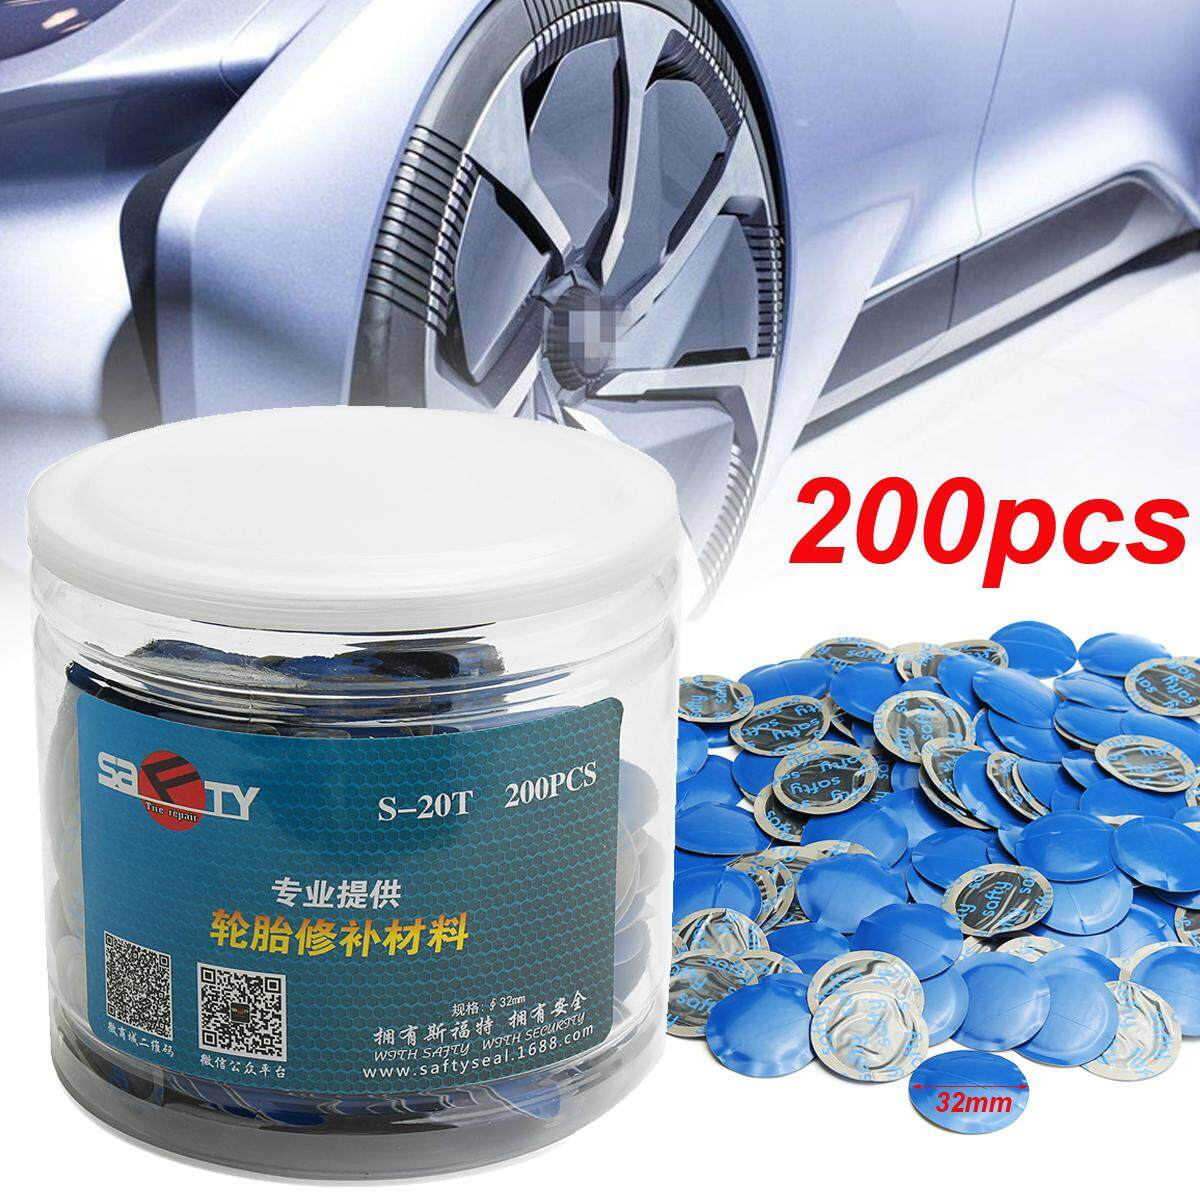 Universal 24pcs 32mm Natural Rubber Wired Tyre Puncture Repair Mushroom Patch By Haldis.